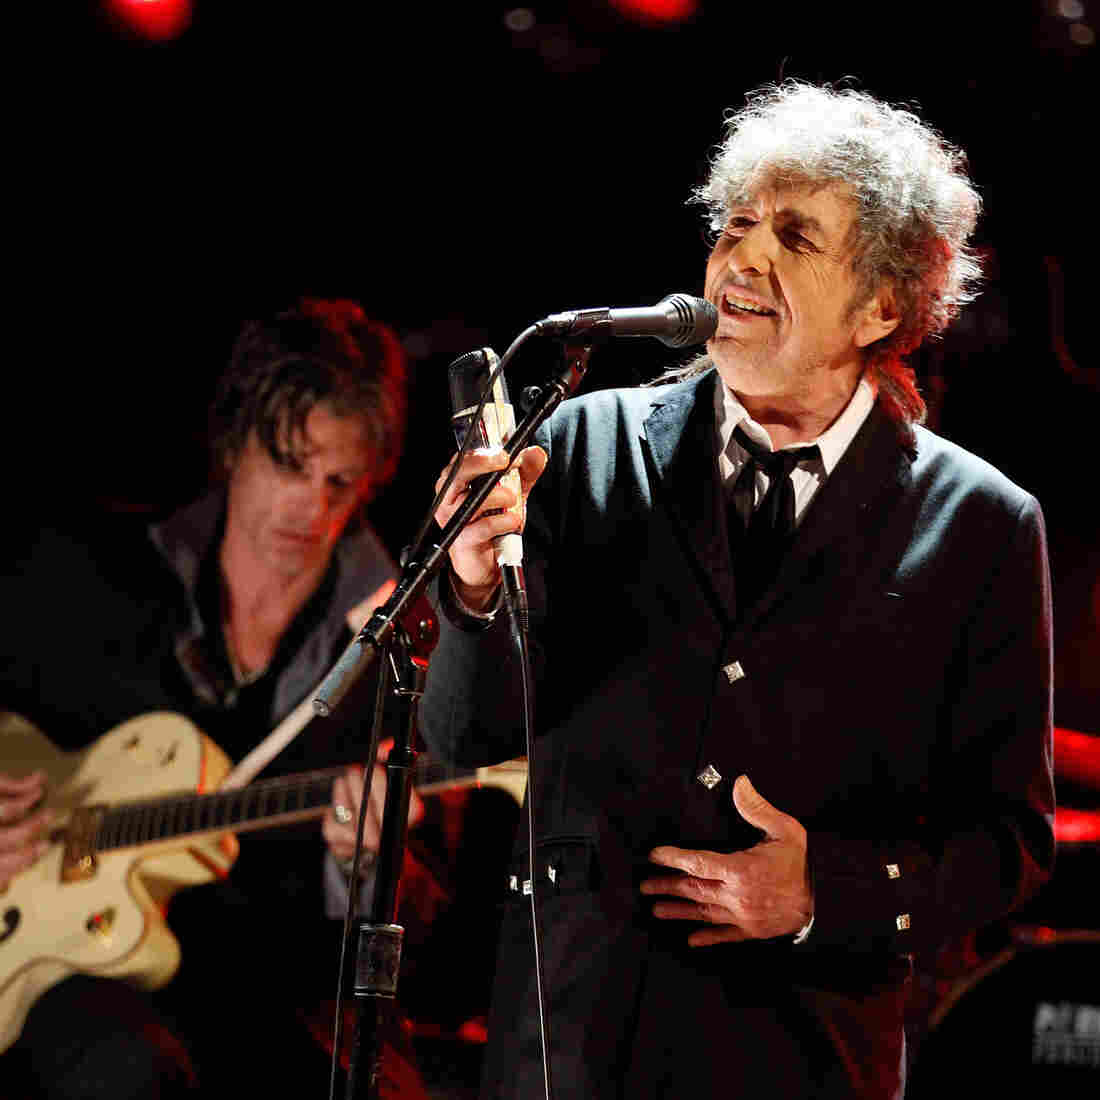 To Promote A New Album, Bob Dylan Gave His Only Interview To ... The AARP?